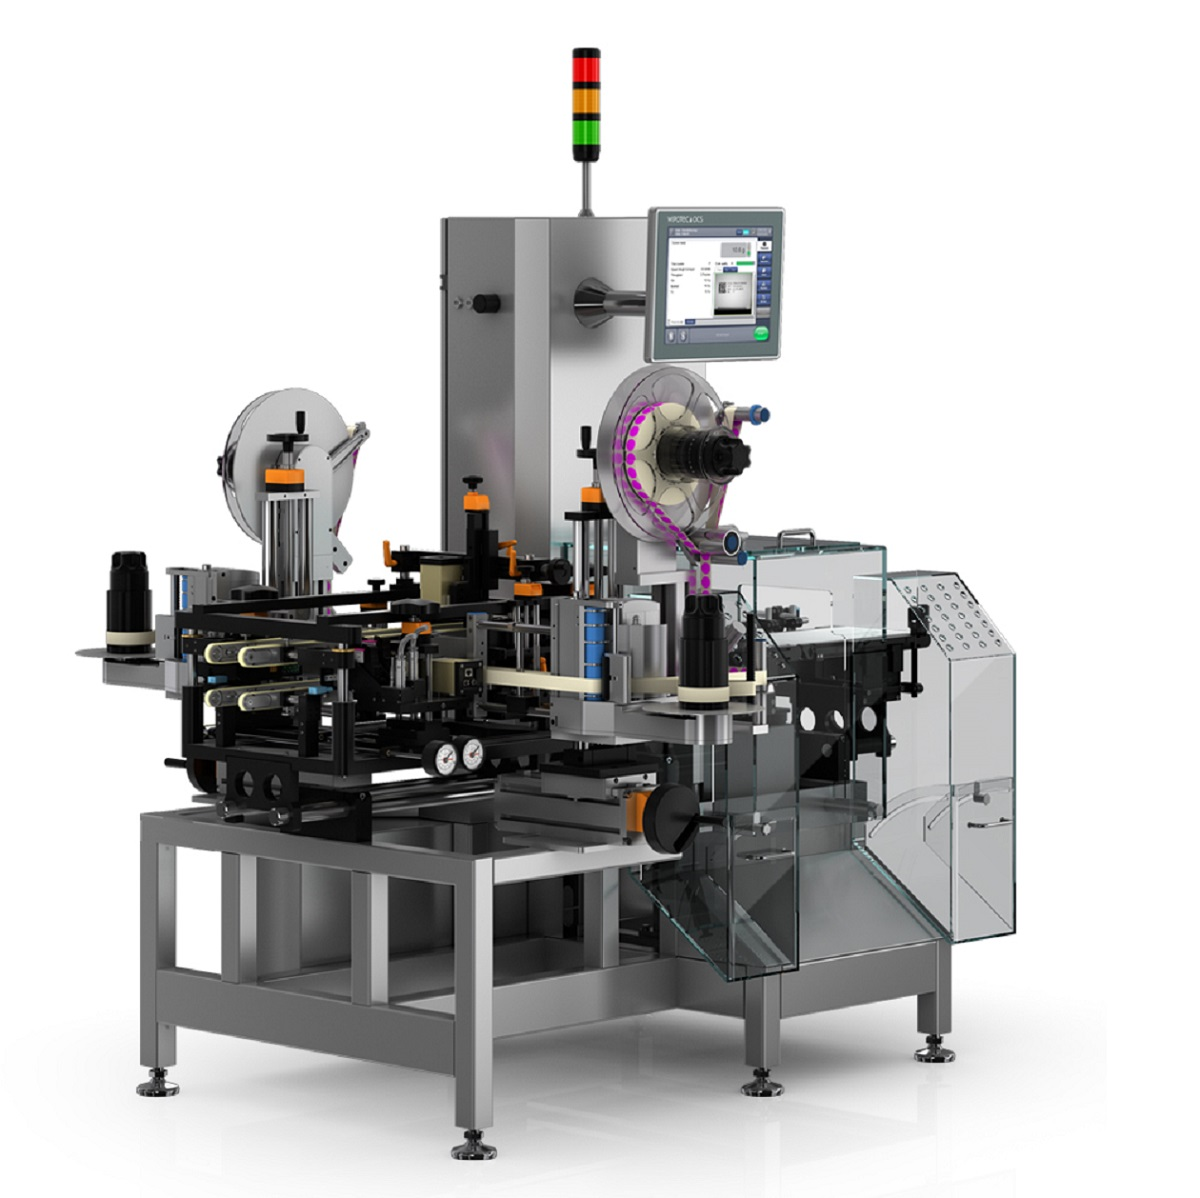 The world's most compact all-in-one serialisation machine